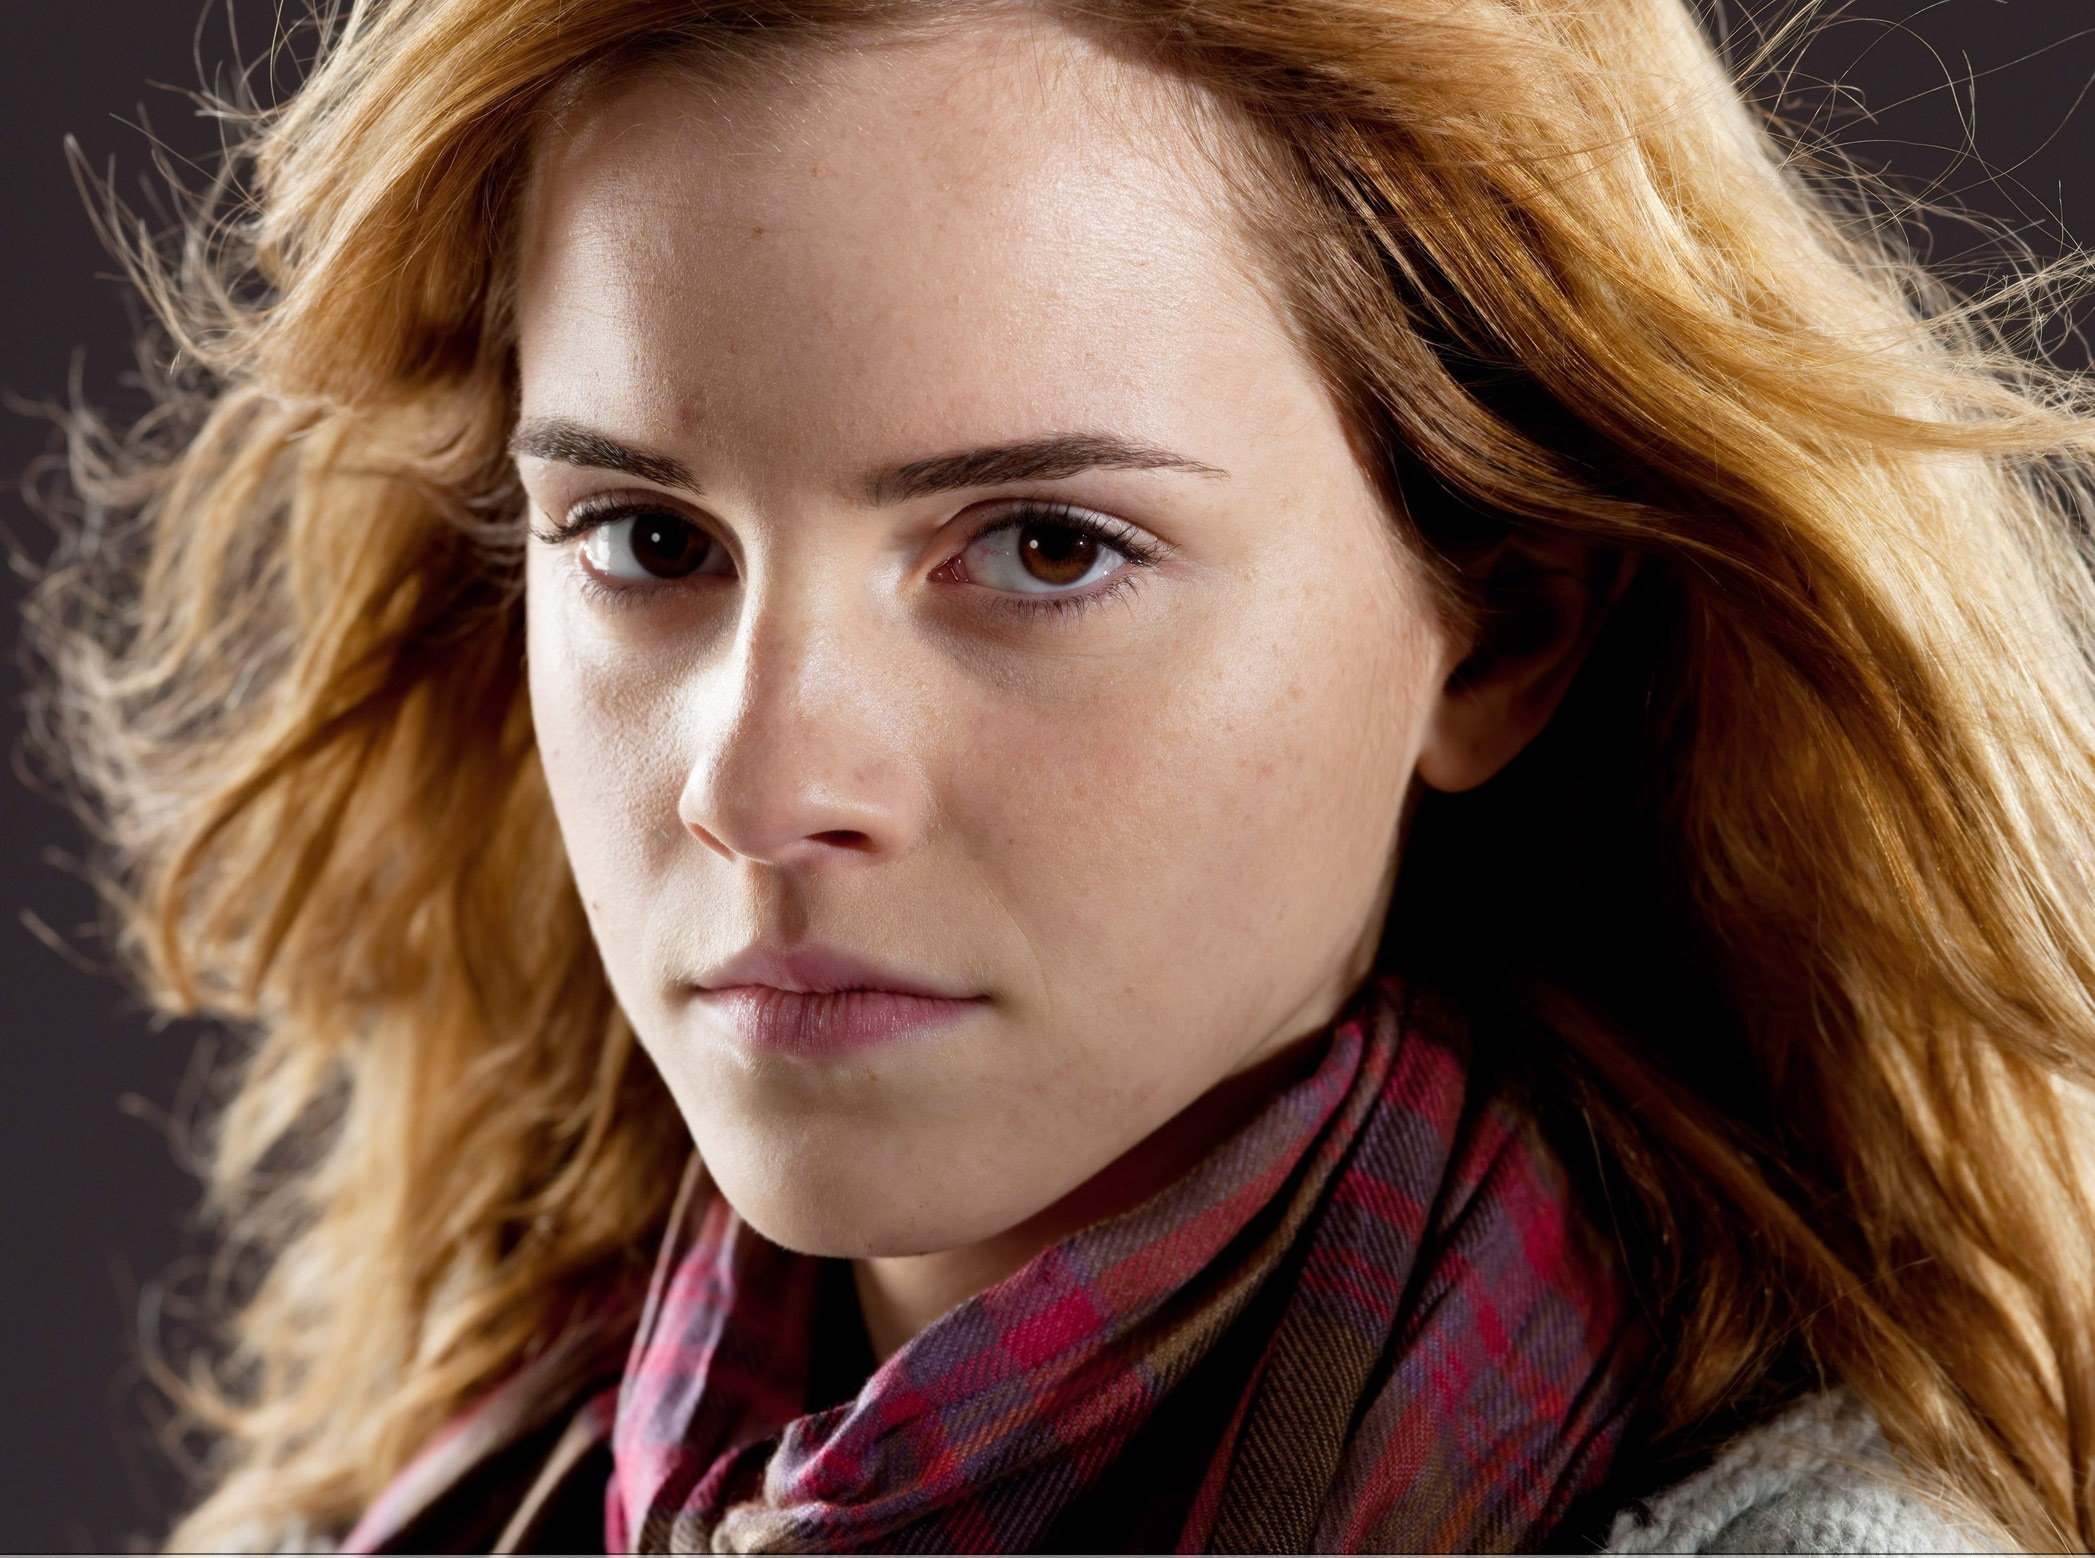 Hermione Hair Thoughts From The Test Chamber